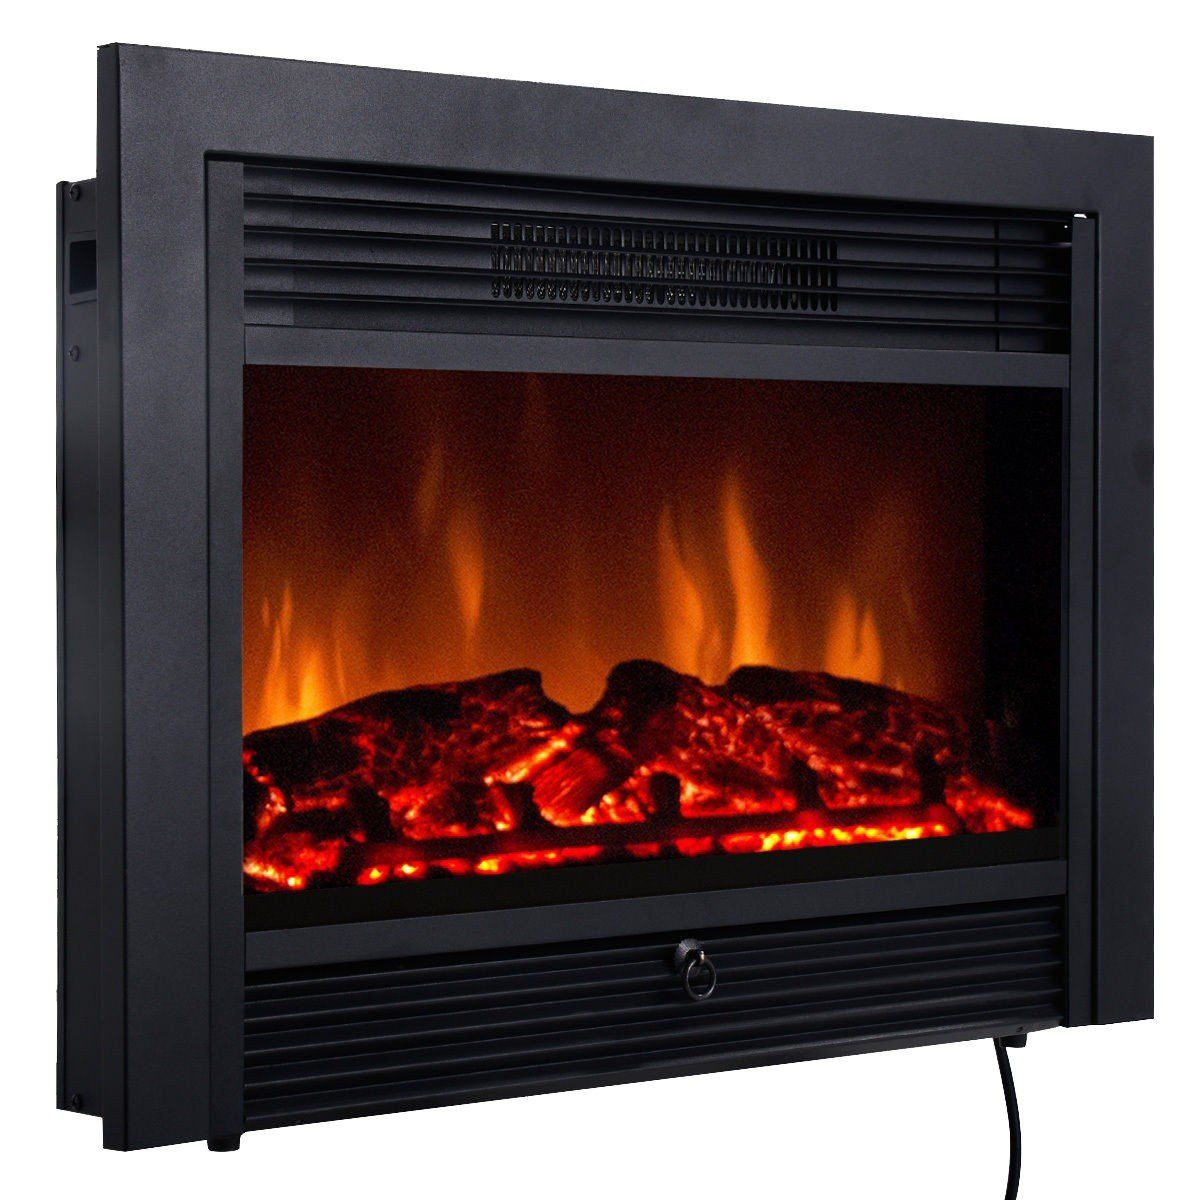 28 5 electric embedded insert heater fireplace in 2019 awesome rh pinterest com